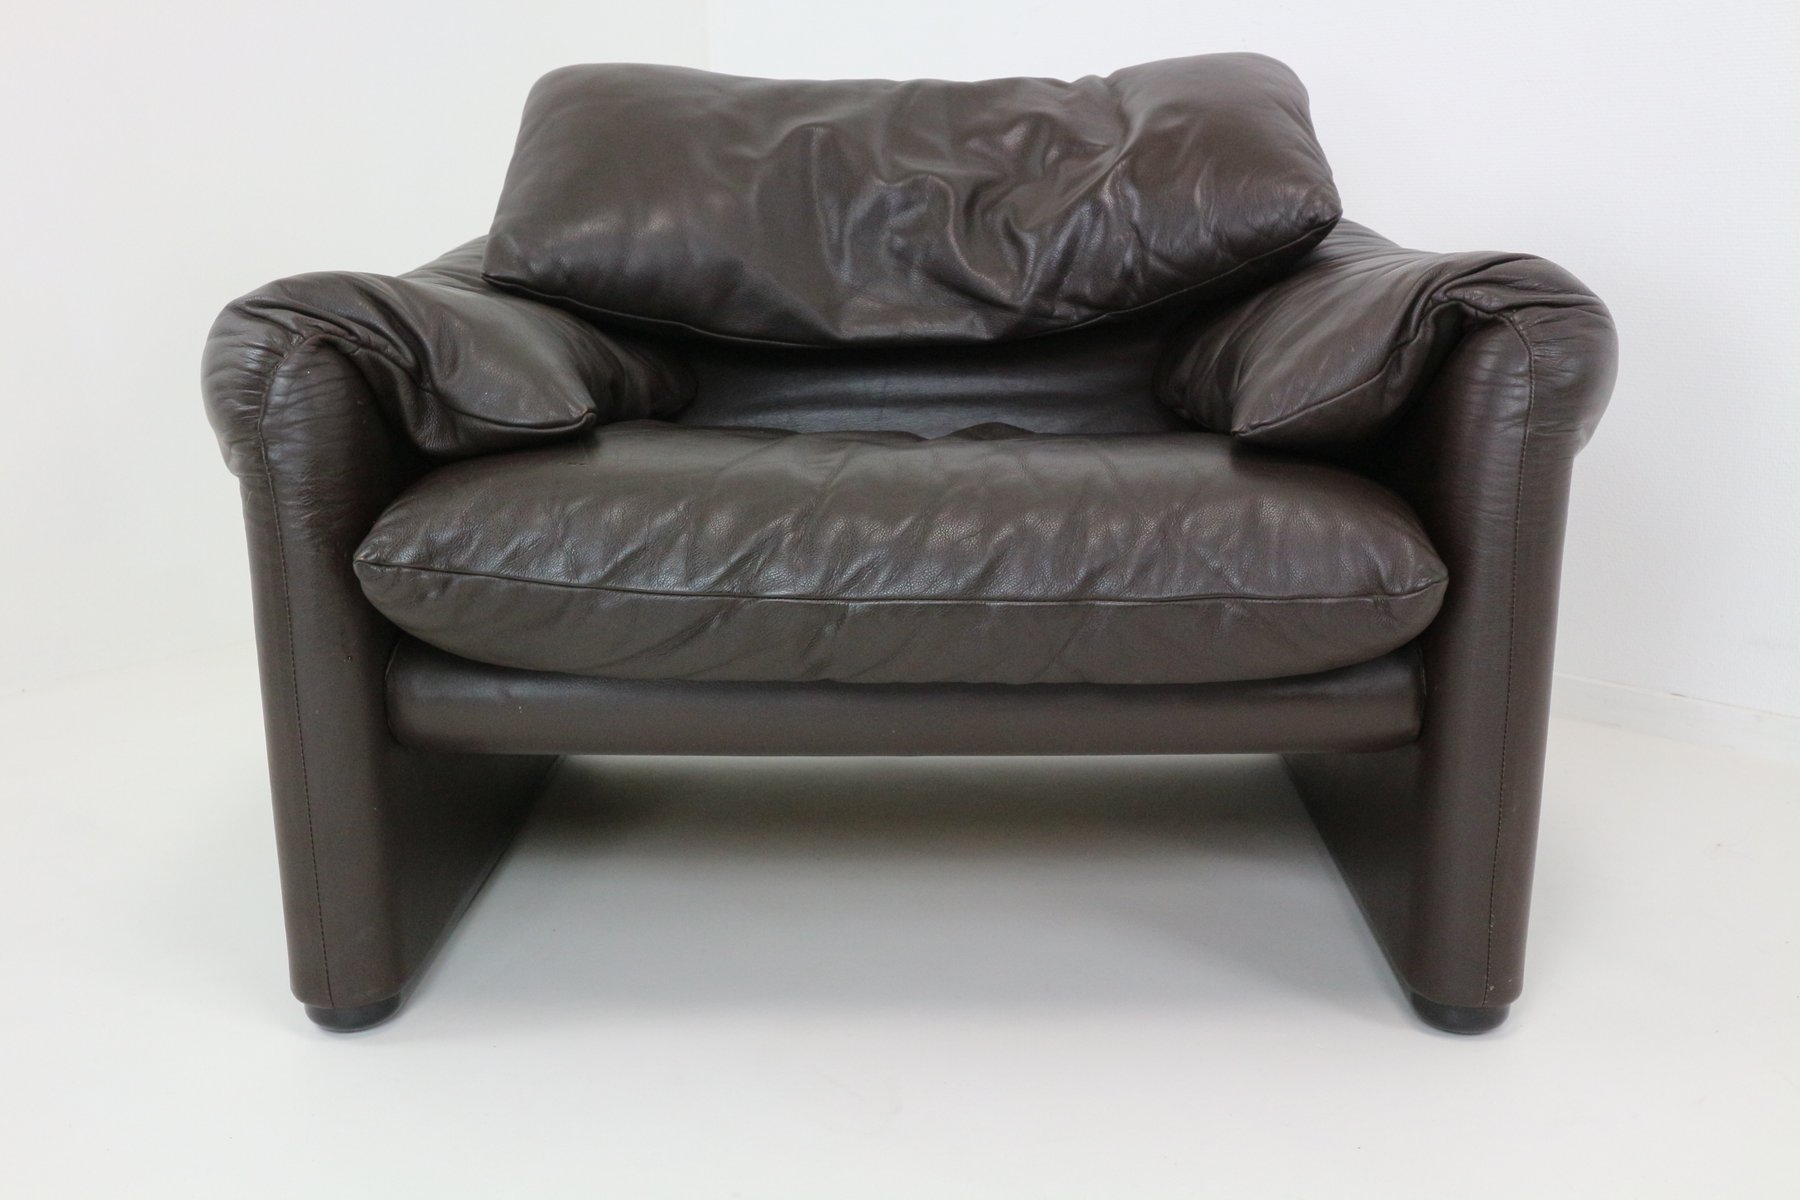 vintage maralunga leather lounge chair by vico magistretti for cassina - Leather Lounge Chair